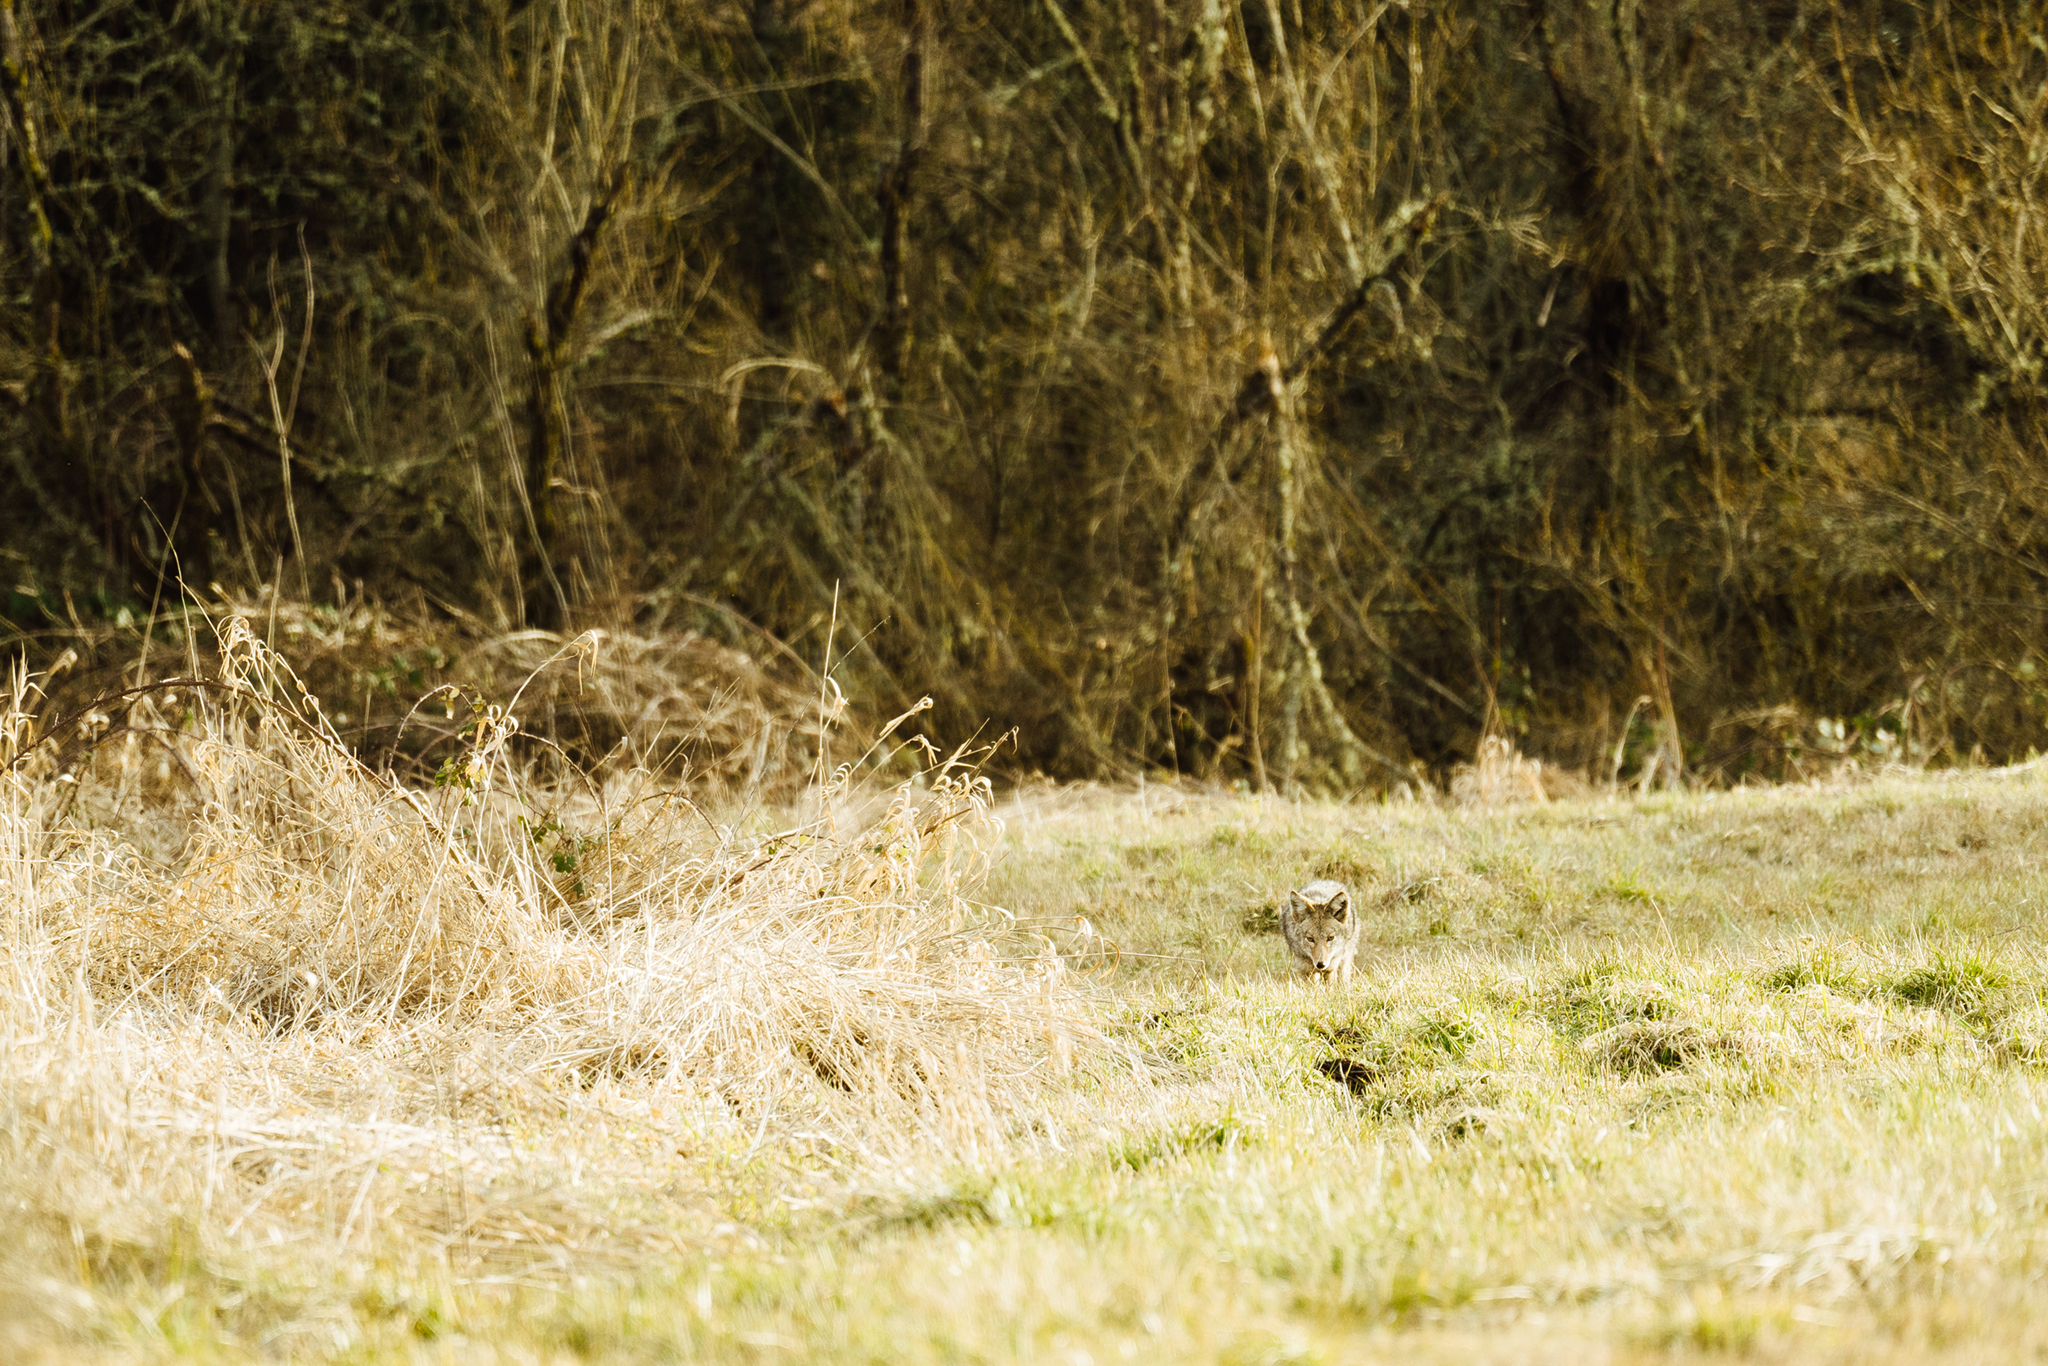 A wild coyote hunting in the tall grass at Nisqually National Wildlife Refuge